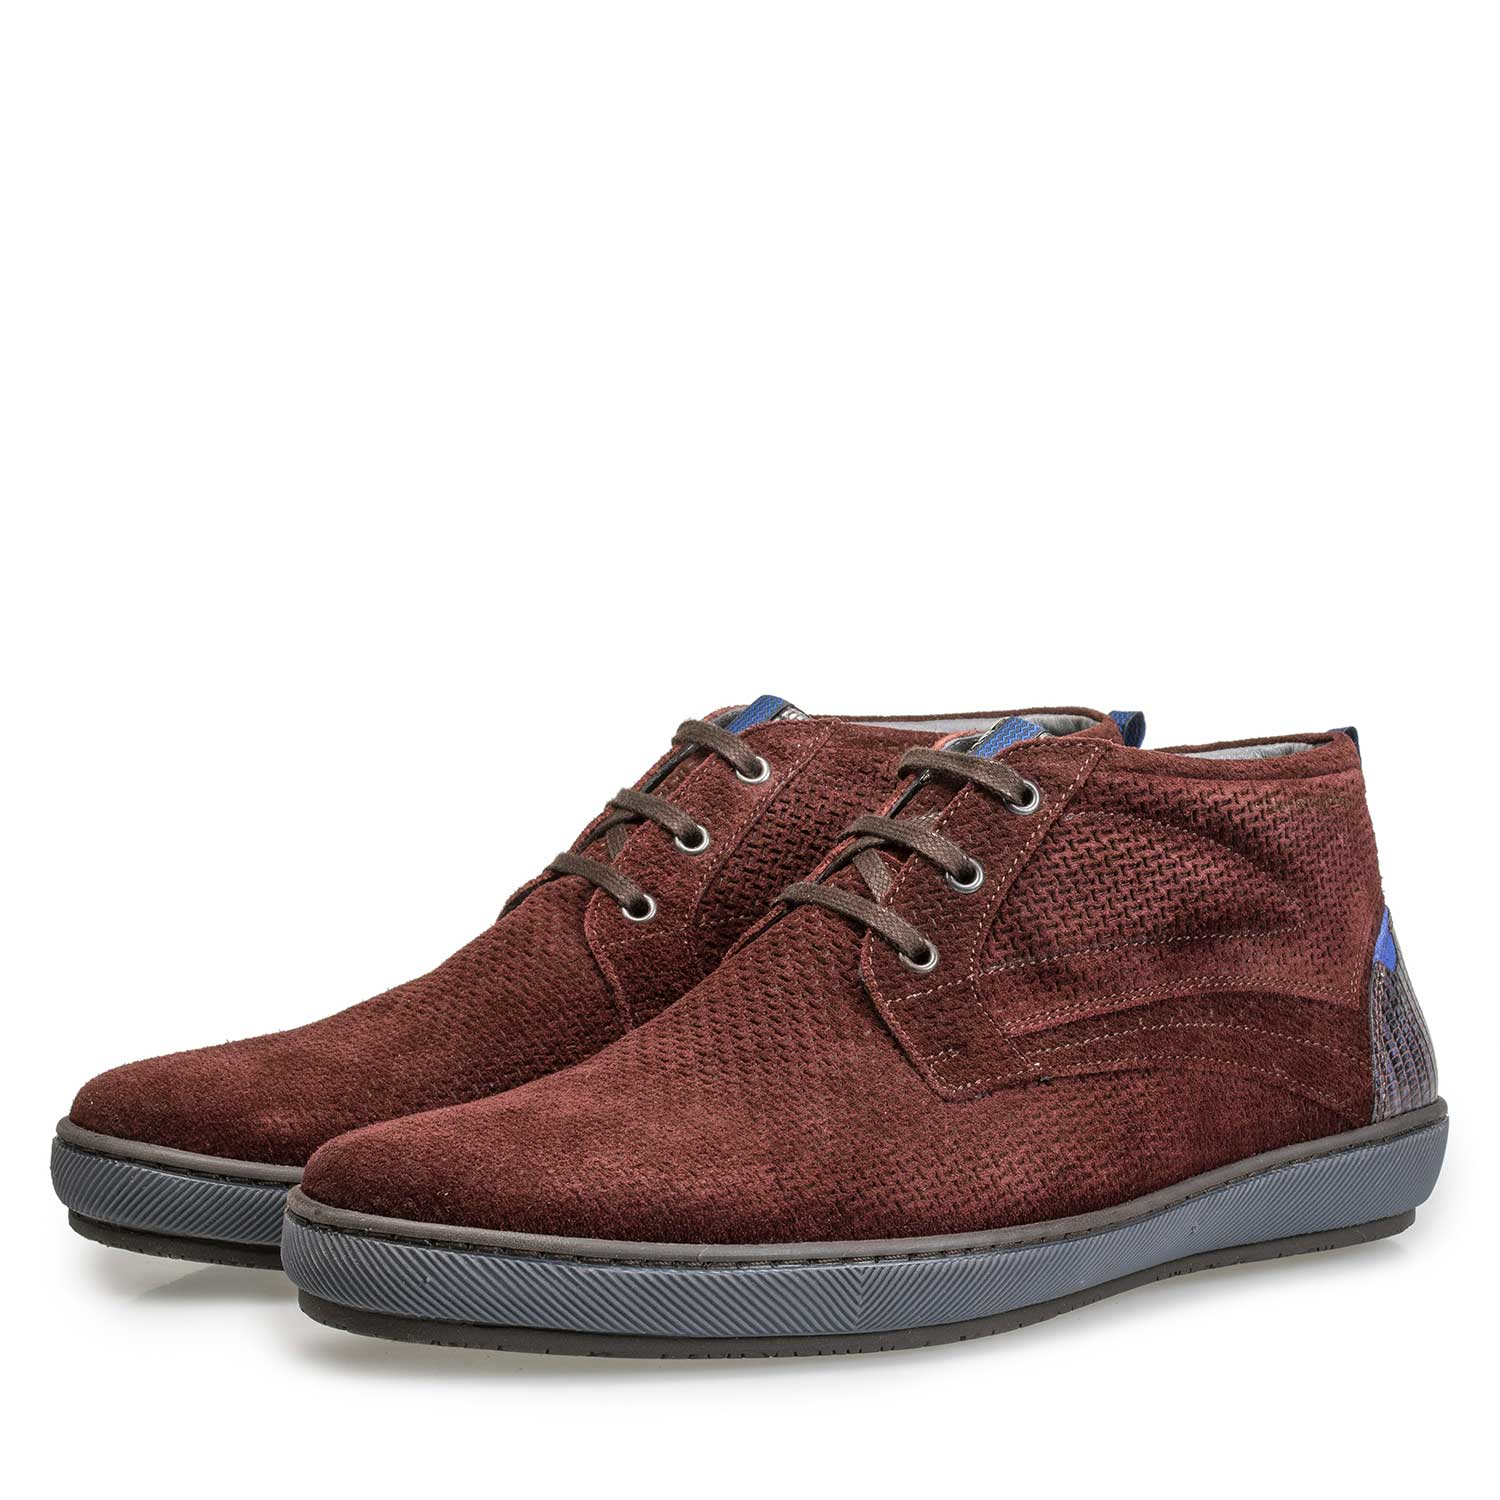 10074/00 - Burgundy red lace boot made of calf's suede leather